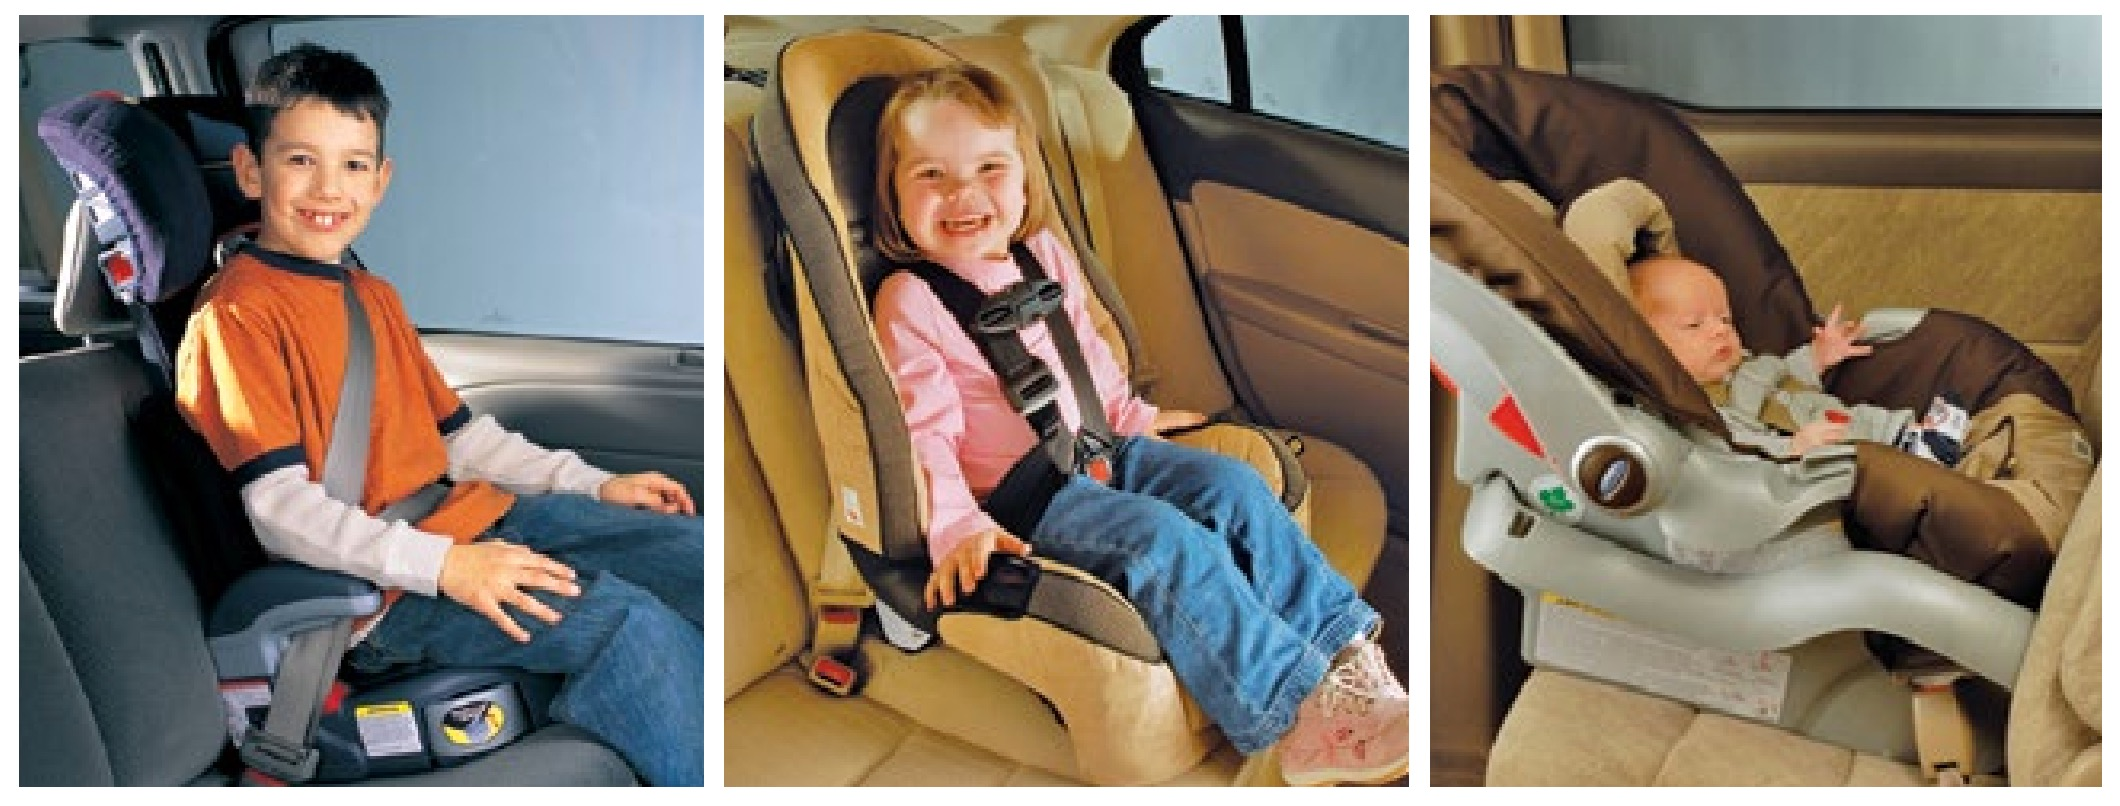 Driving Tips seatbelts and child restraints